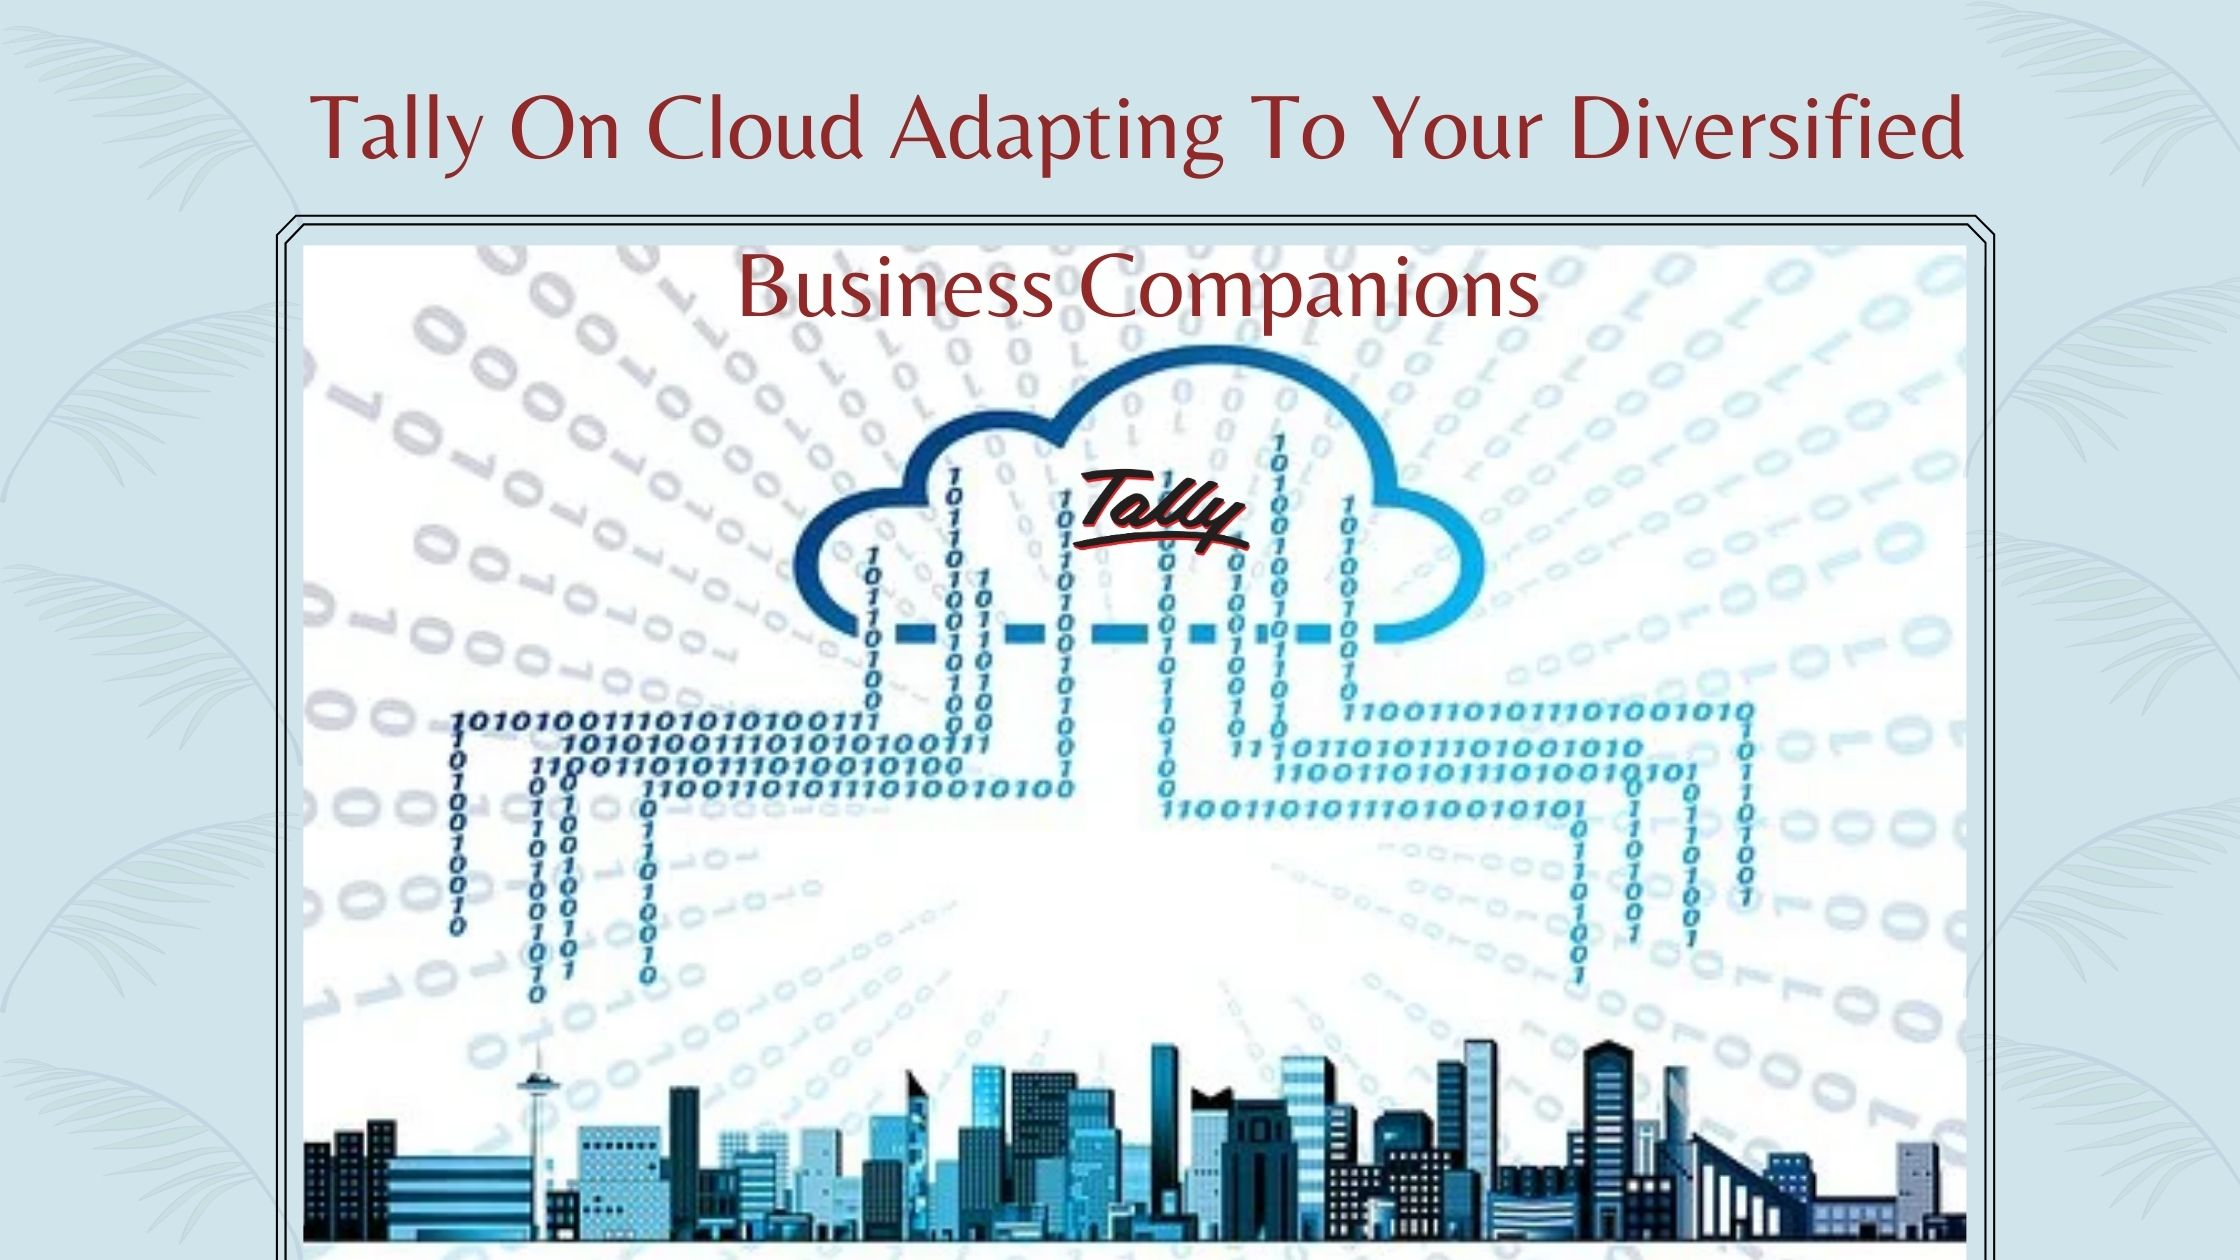 Tally On Cloud for Diversified Business